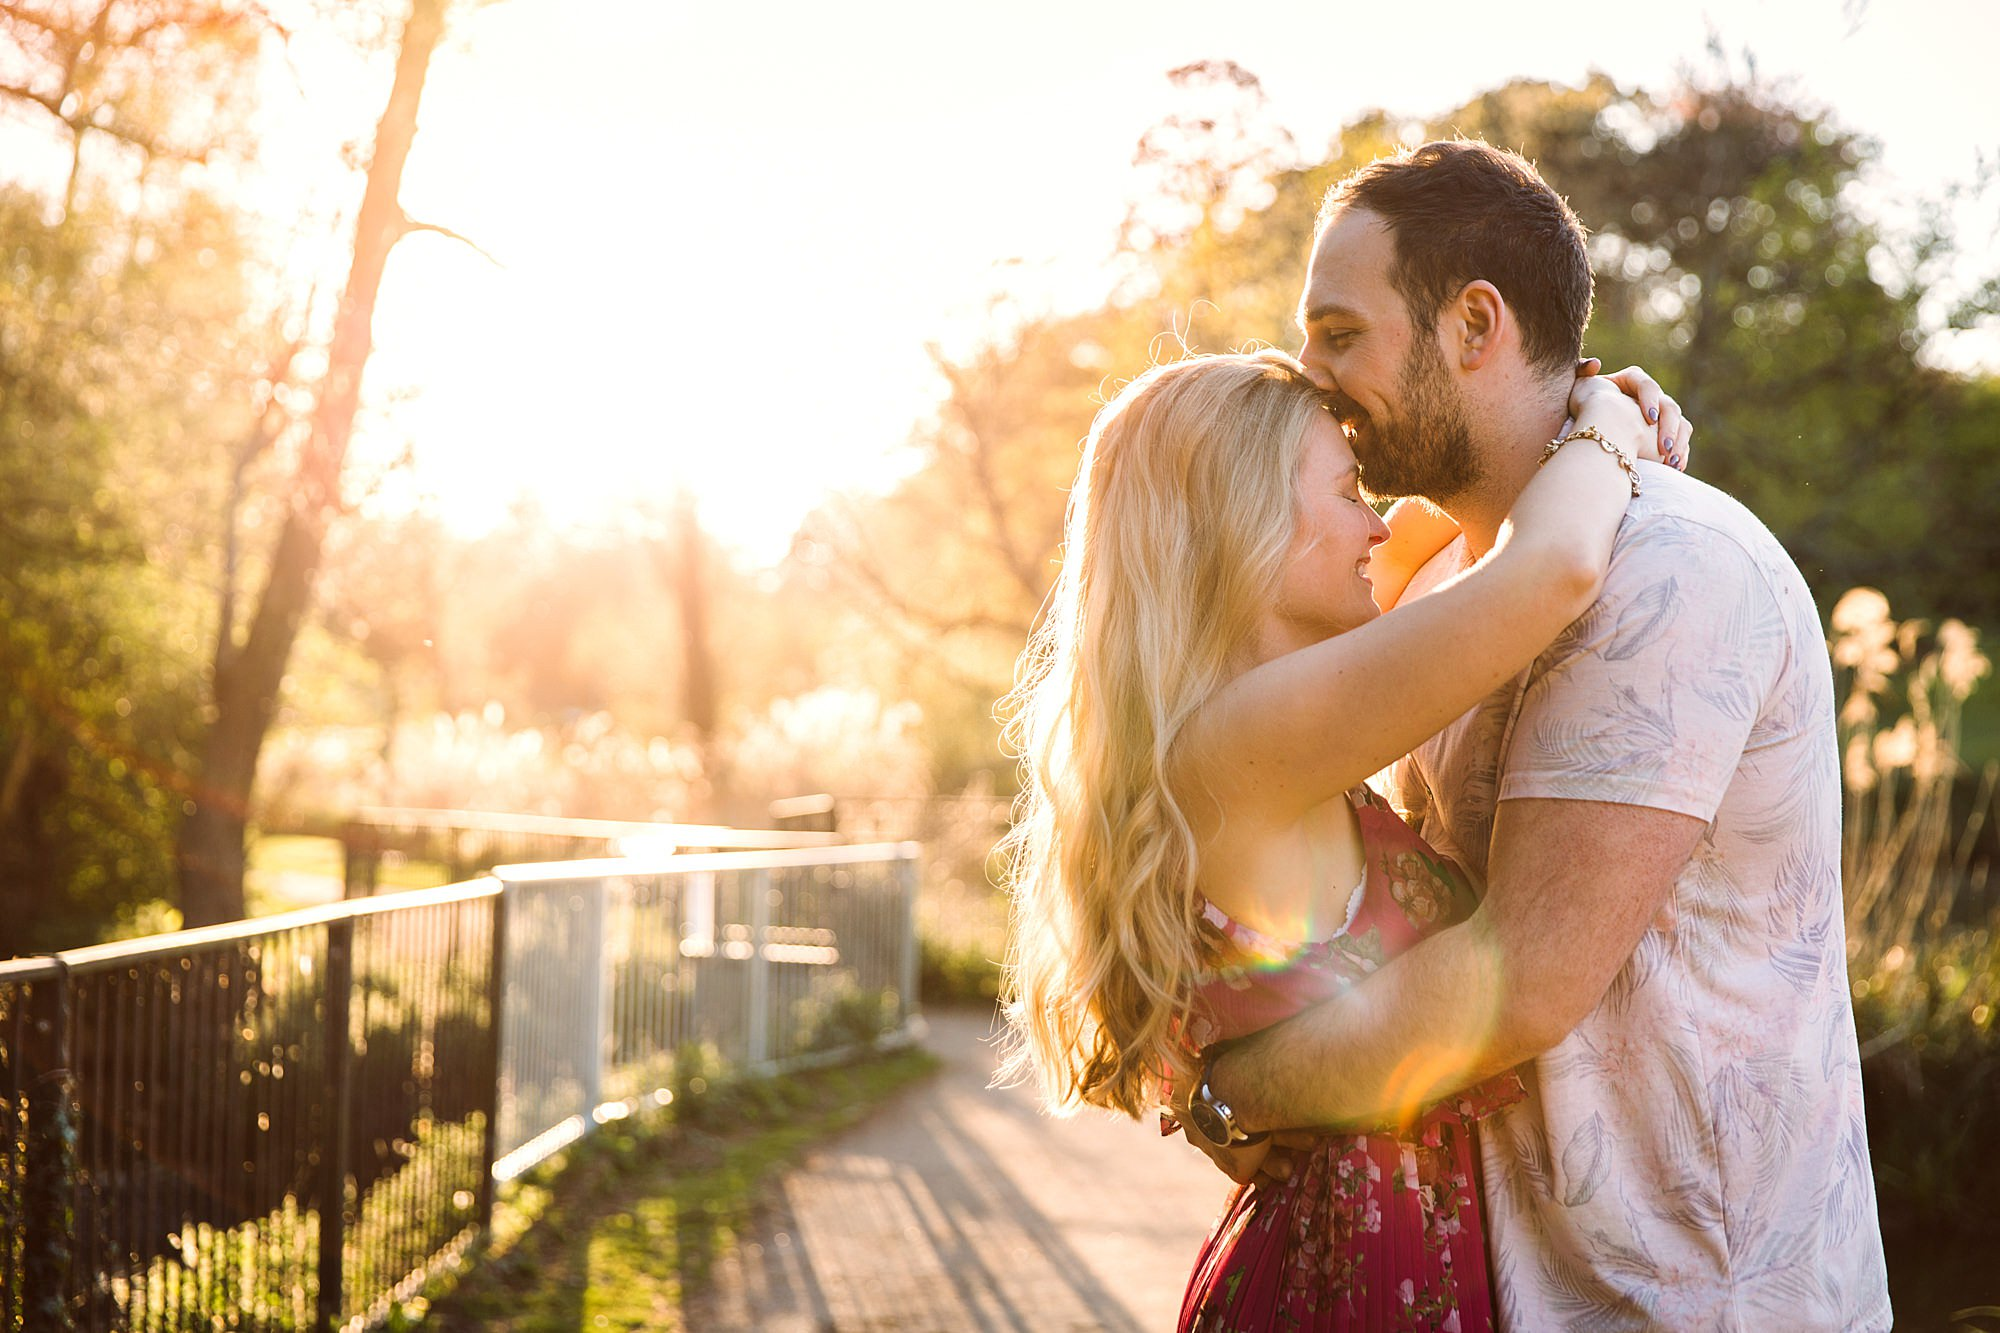 Summer evening engagement shoot groom kisses bride to be on forehead in bright sunlight